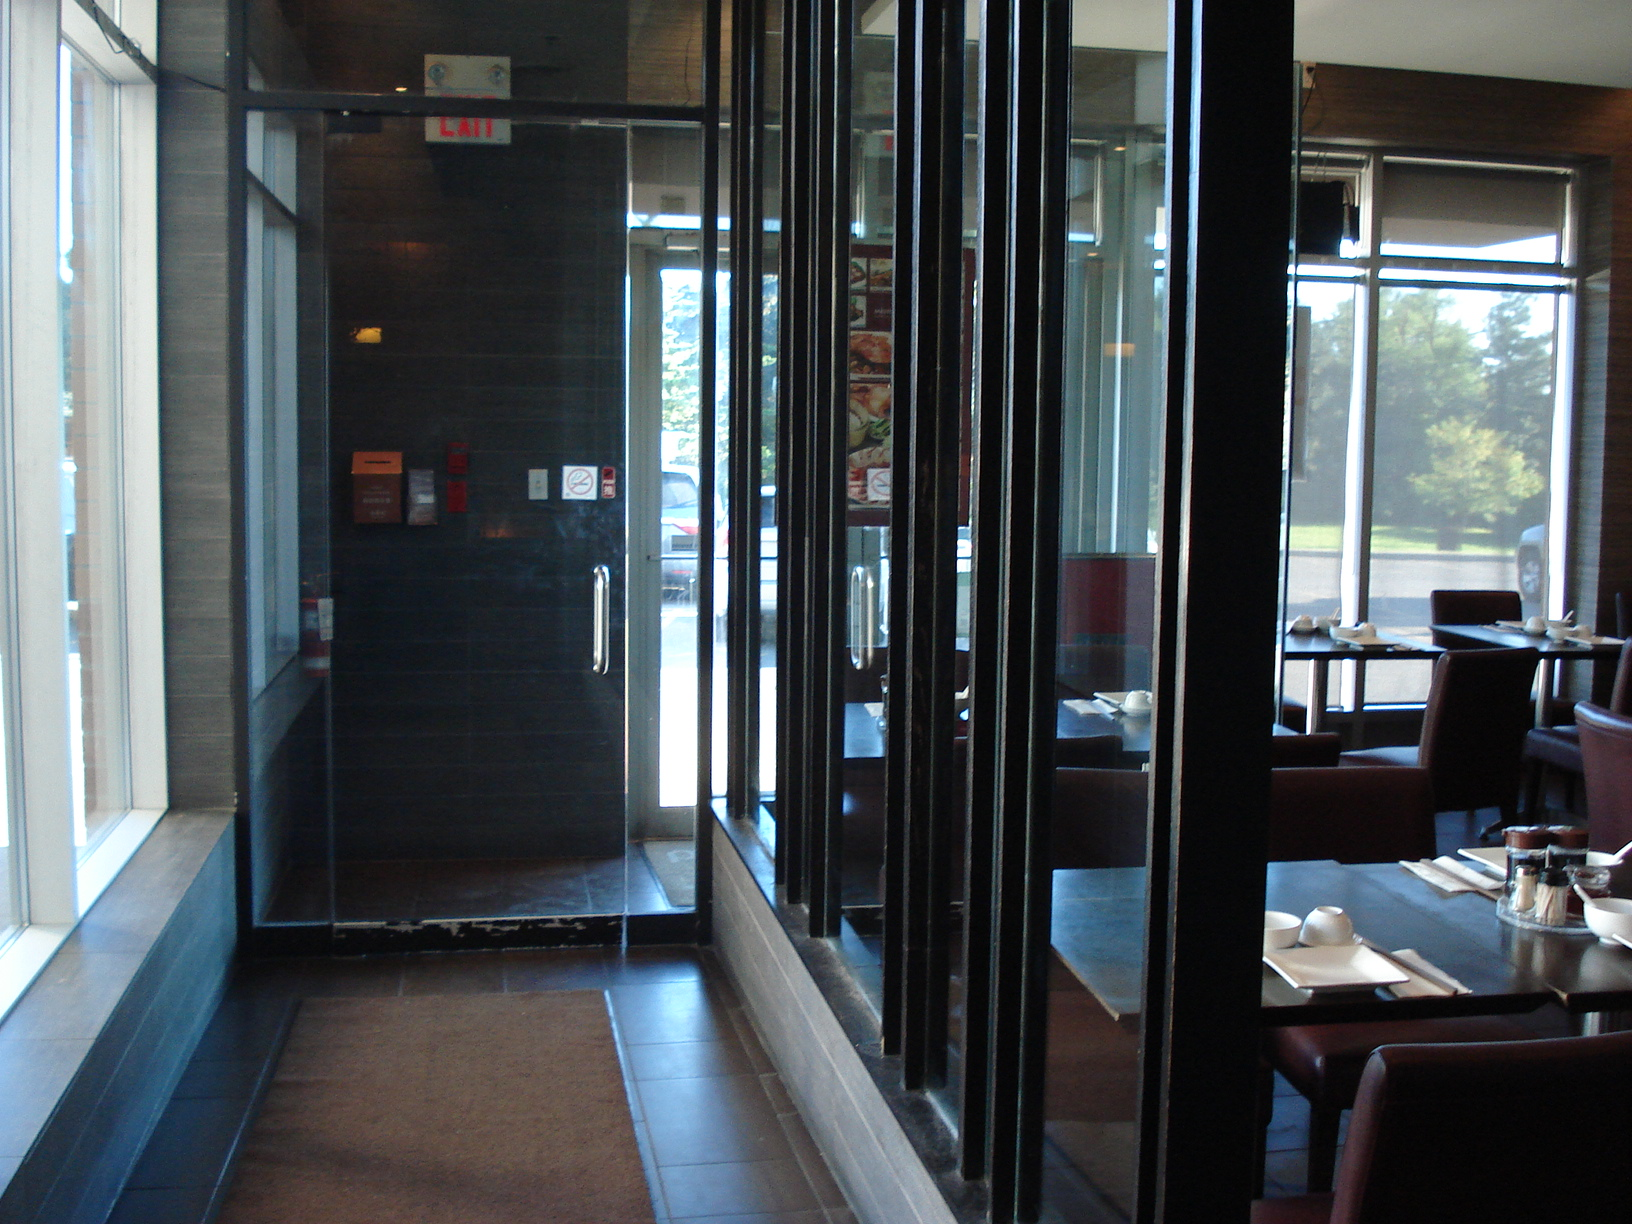 Picture of accessible entrance from interior perspective.